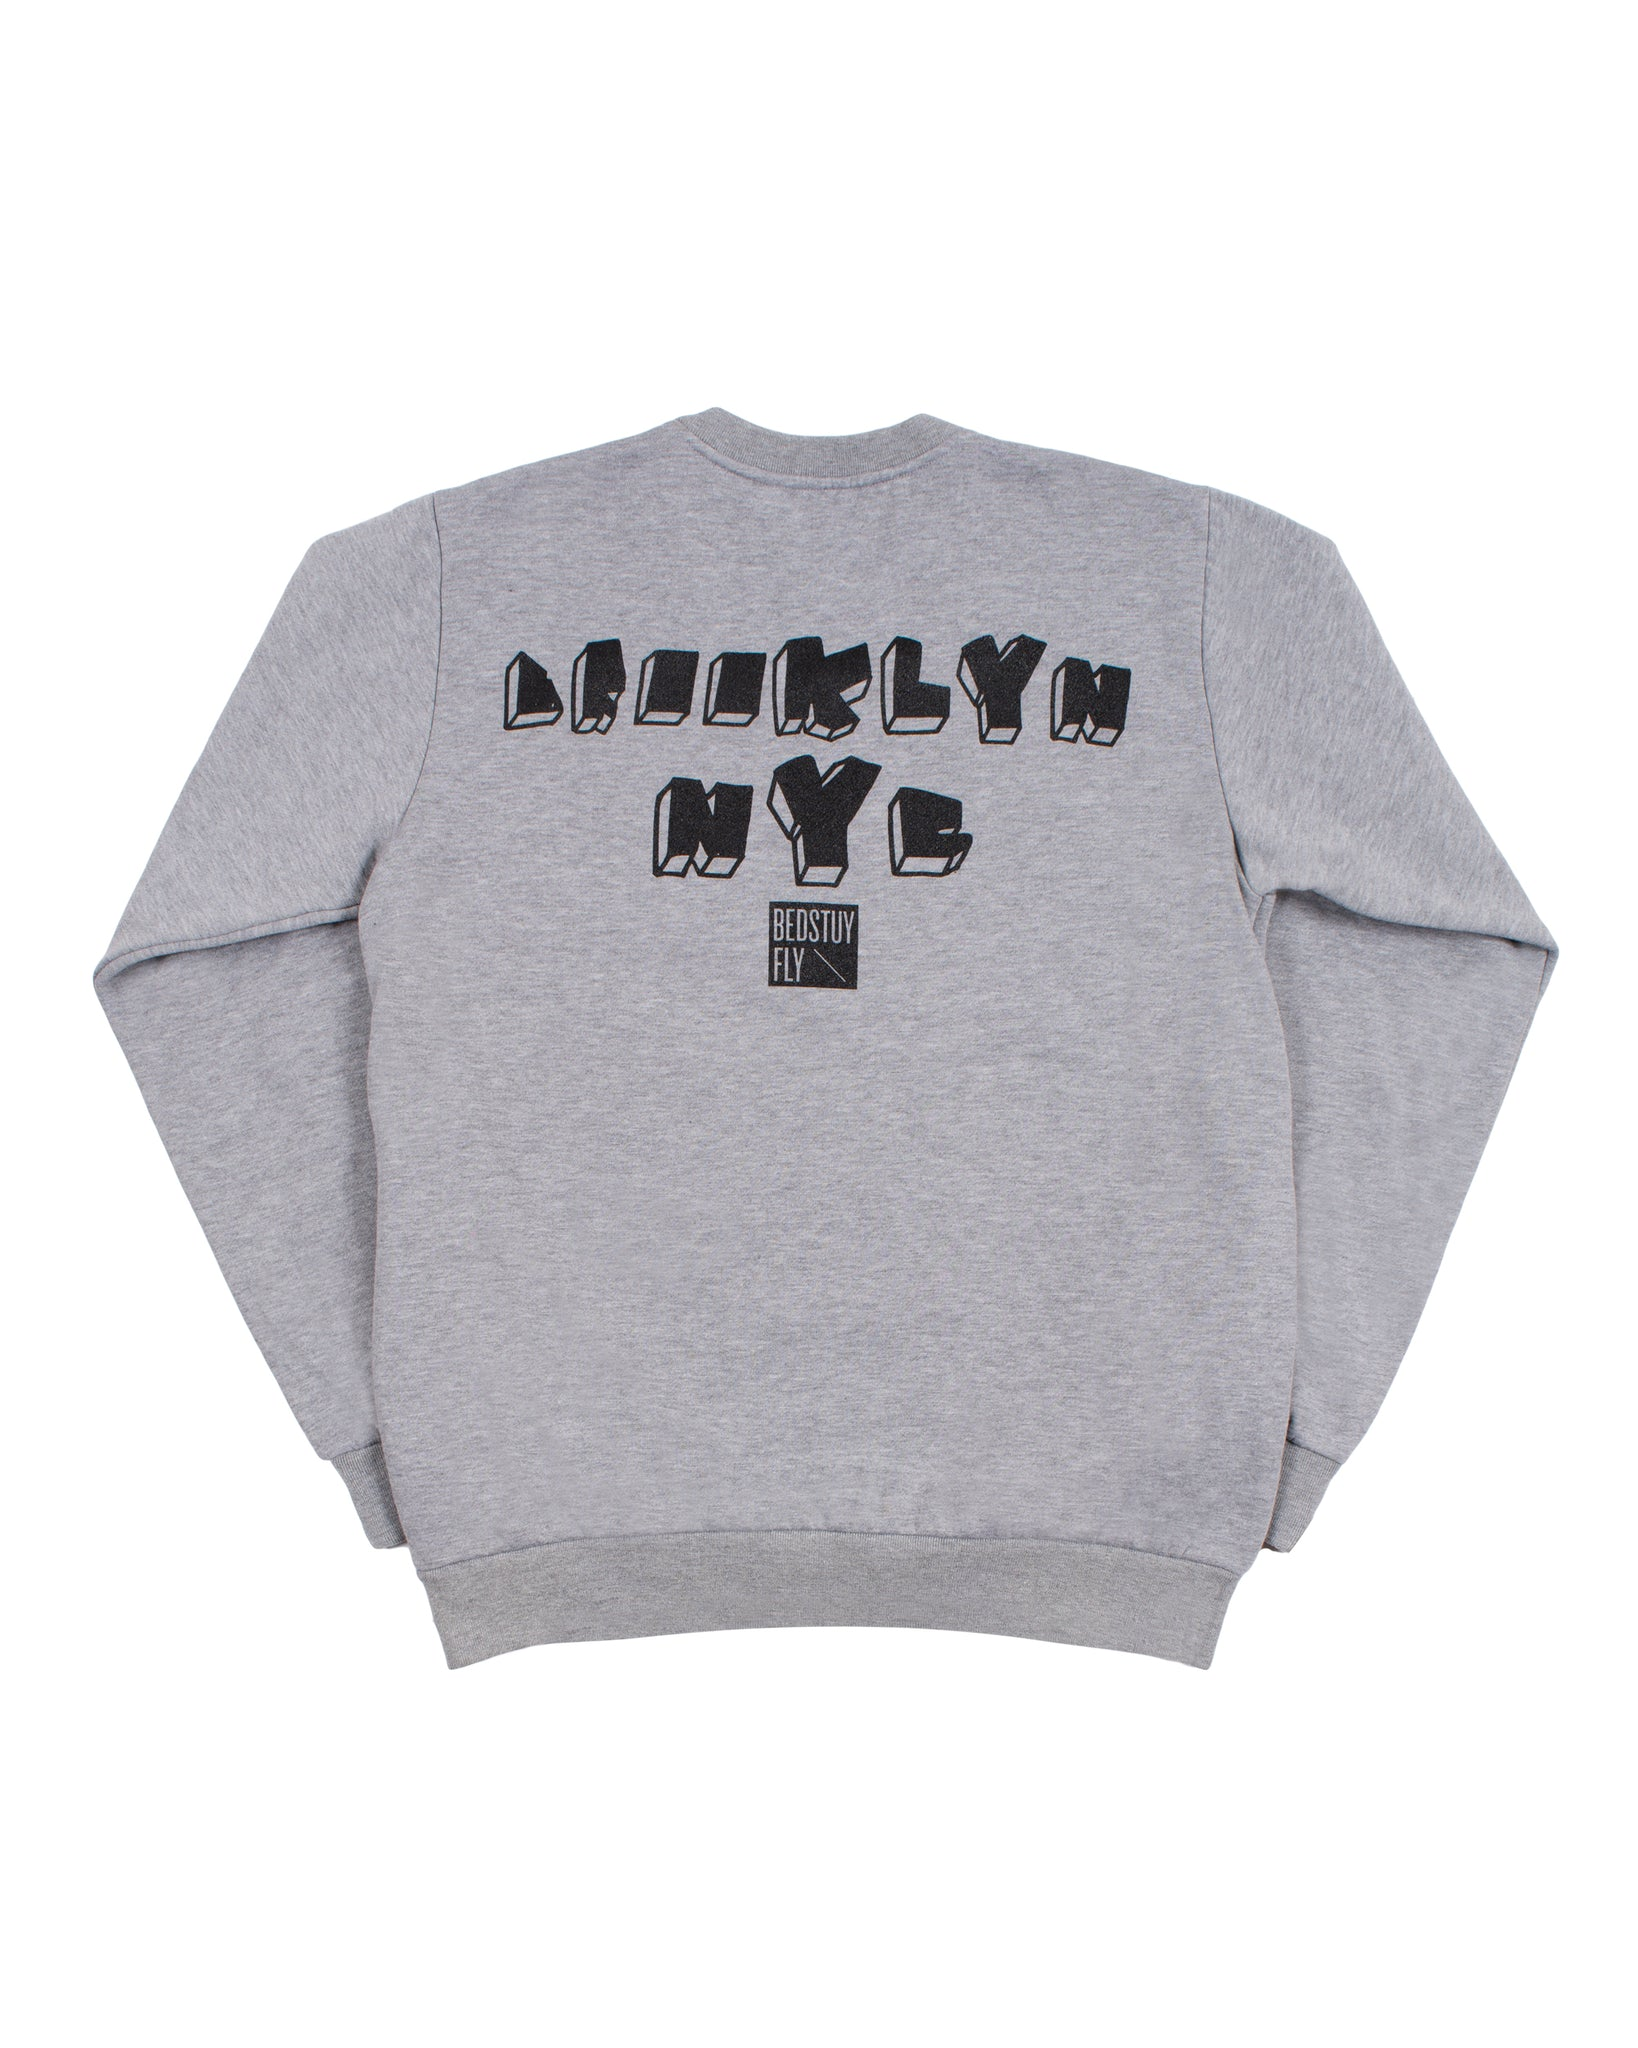 No Rules Sweatshirt (Gray)